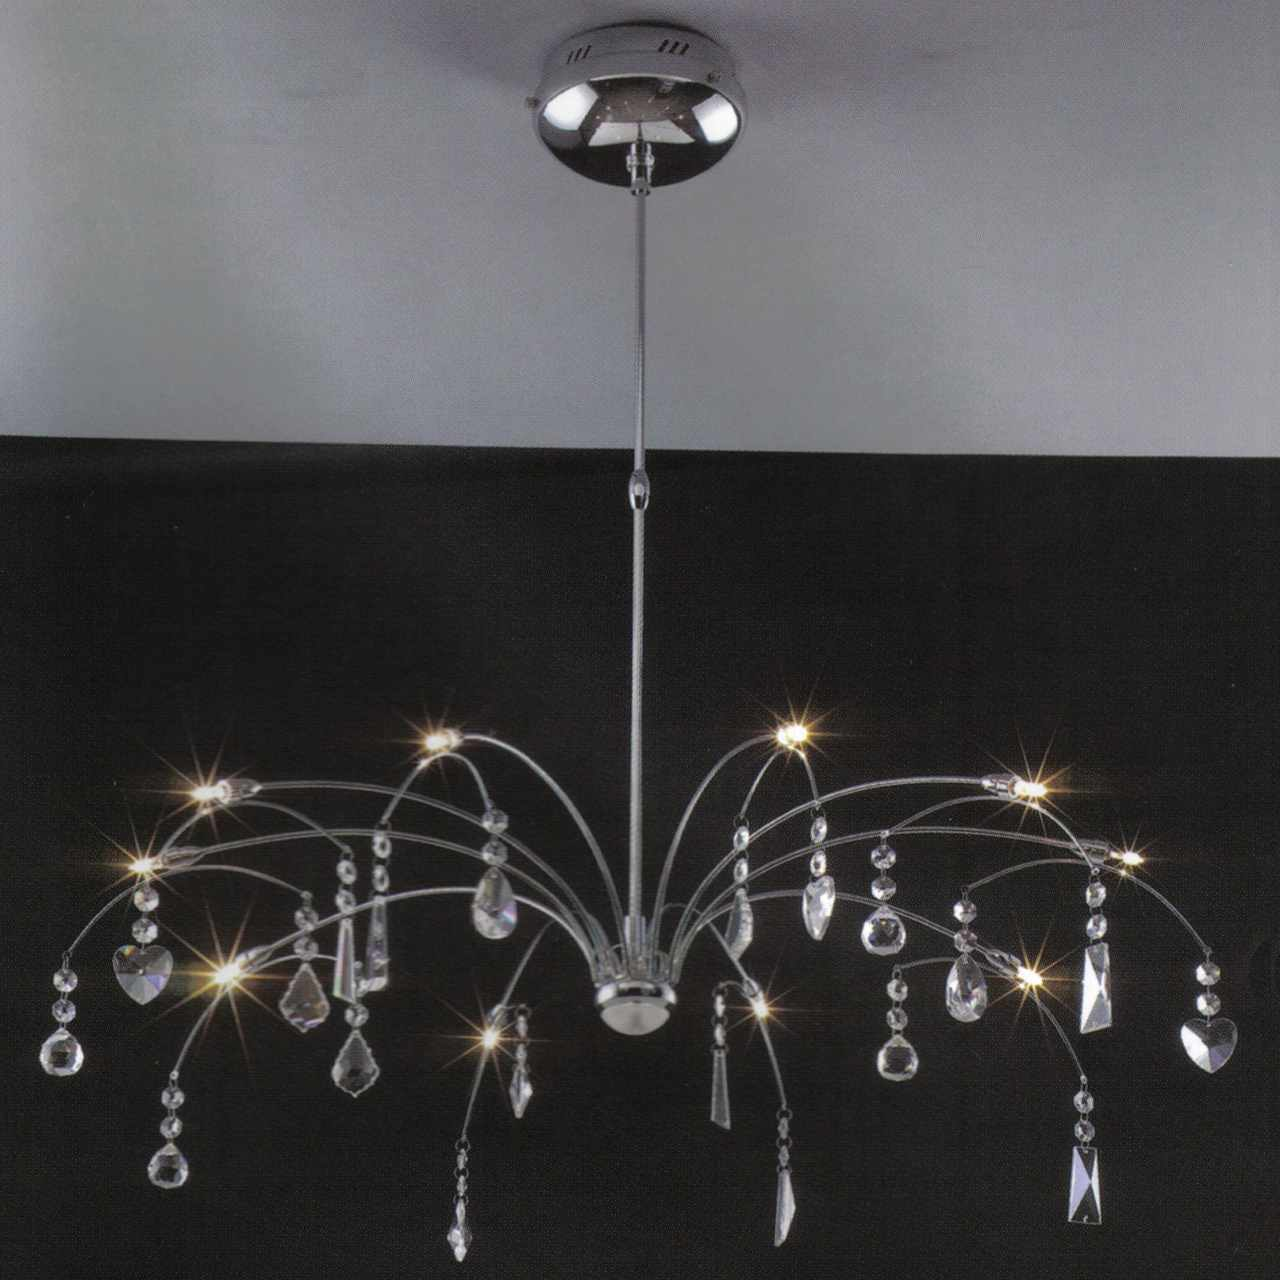 Brizzo lighting stores 31 aria modern crystal round chandelier polished chrome 12 lights - Lights and chandeliers ...